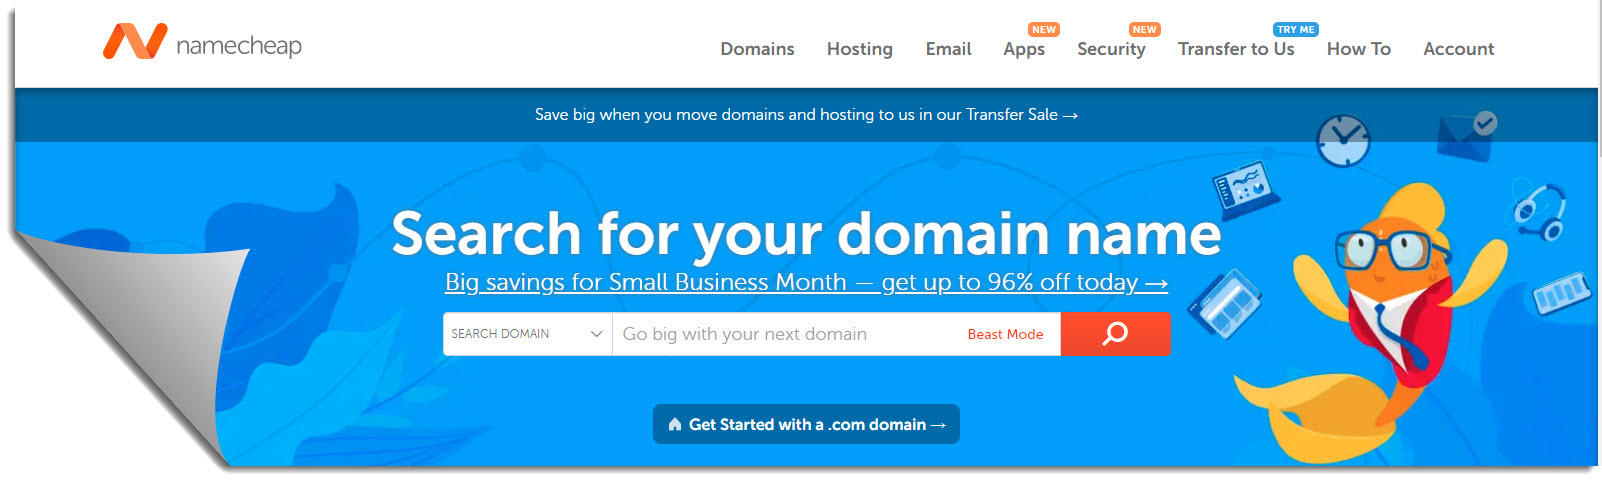 Namecheap Share Hosting is the best web hosting company for 2020 Review